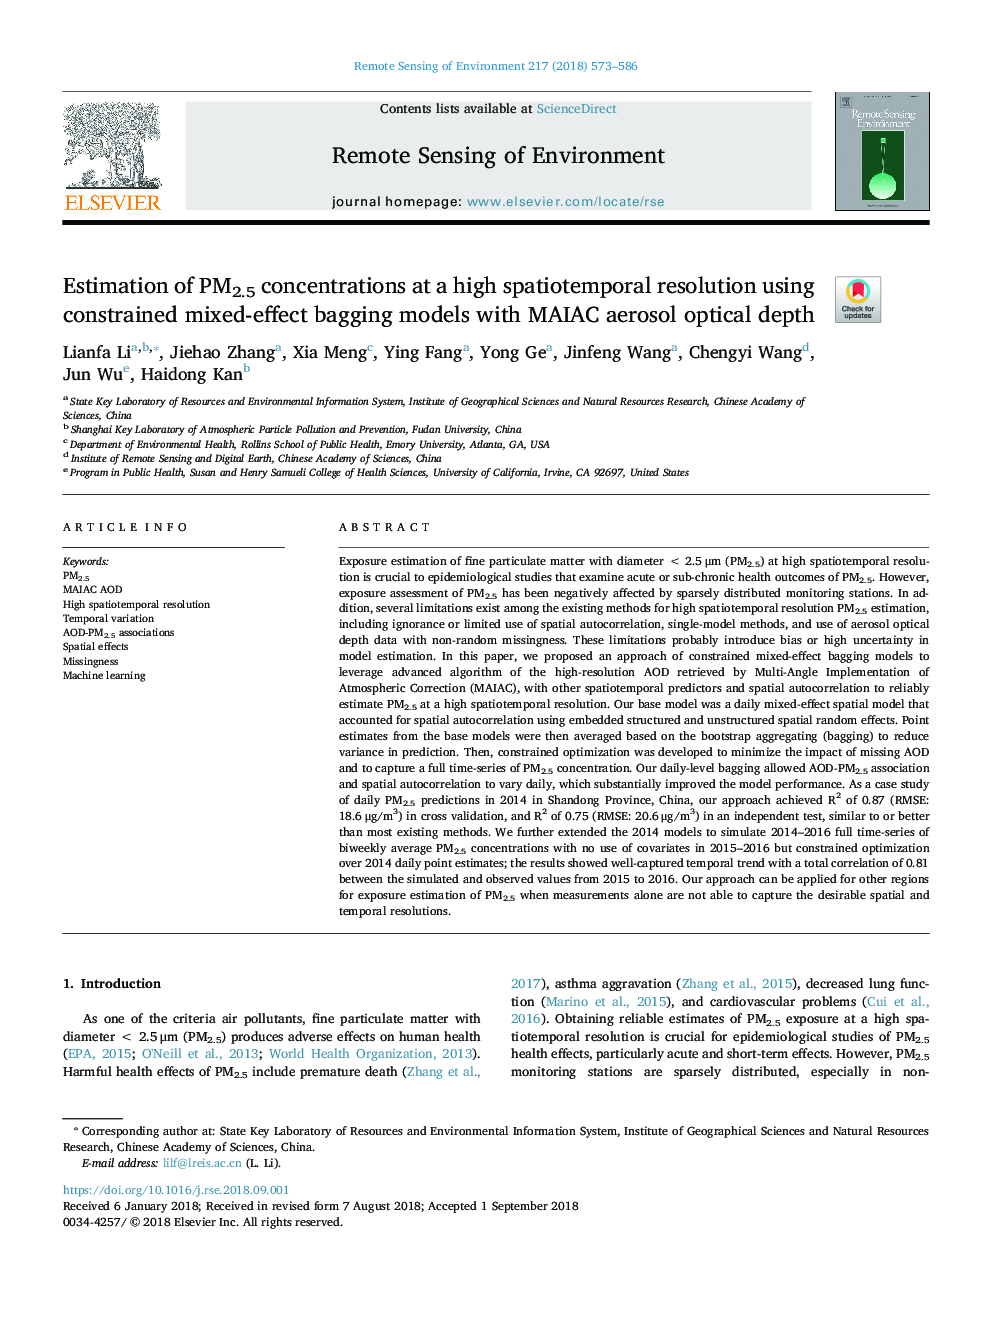 Estimation of PM2.5 concentrations at a high spatiotemporal resolution using constrained mixed-effect bagging models with MAIAC aerosol optical depth